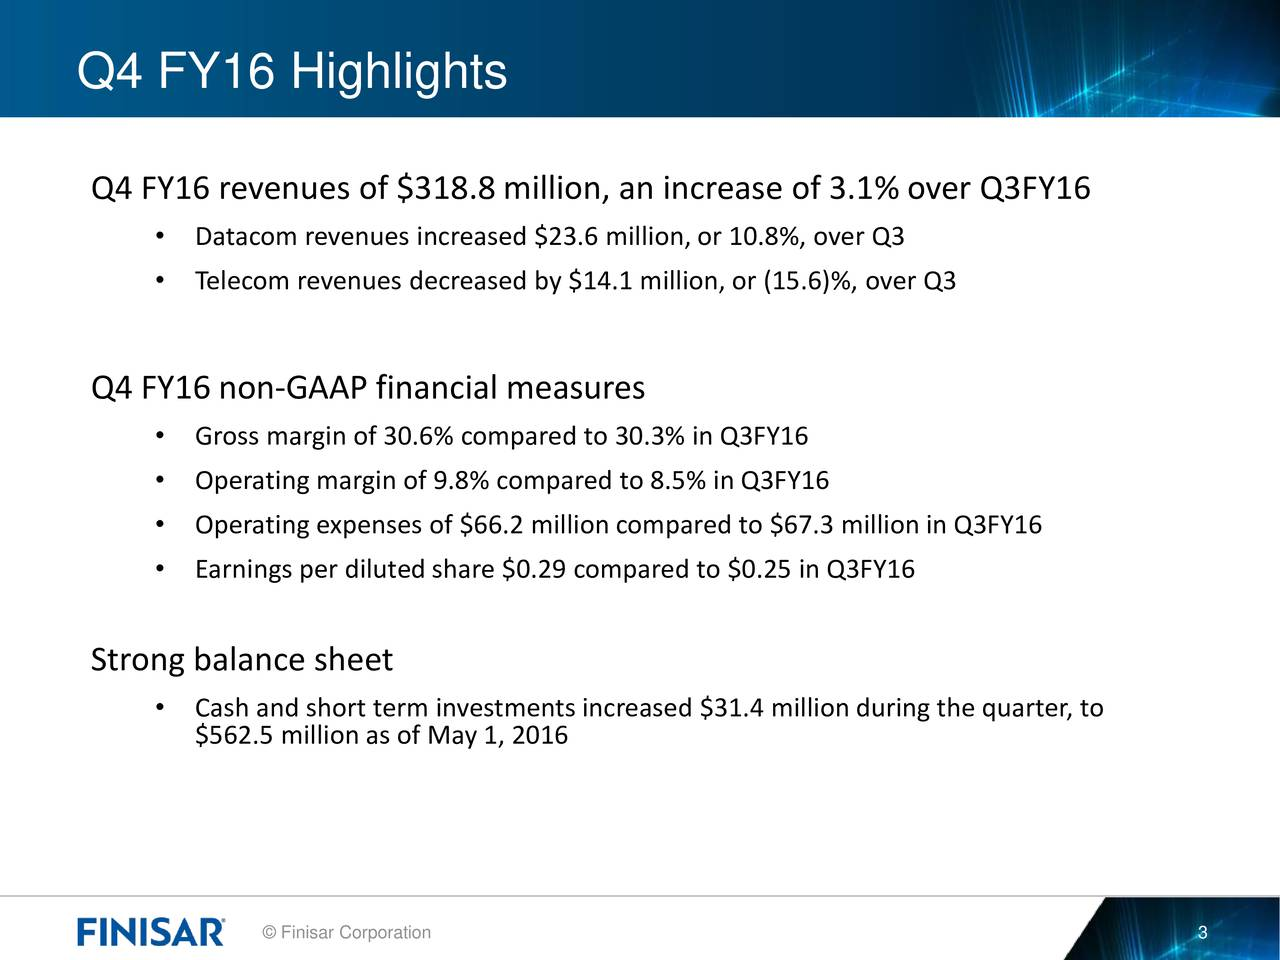 Q4 FY16 revenues of $318.8 million, an increase of 3.1% over Q3FY16 Datacom revenues increased $23.6 million, or 10.8%, over Q3 Telecom revenues decreased by $14.1 million, or (15.6)%, over Q3 Q4 FY16 non-GAAP financial measures Gross margin of 30.6% compared to 30.3% in Q3FY16 Operating margin of 9.8% compared to 8.5% in Q3FY16 Operating expenses of $66.2 million compared to $67.3 million in Q3FY16 Earnings per diluted share $0.29 compared to $0.25 in Q3FY16 Strong balance sheet Cash and short term investments increased $31.4 million during the quarter, to $562.5 million as of May 1, 2016 Finisar Corporation 3